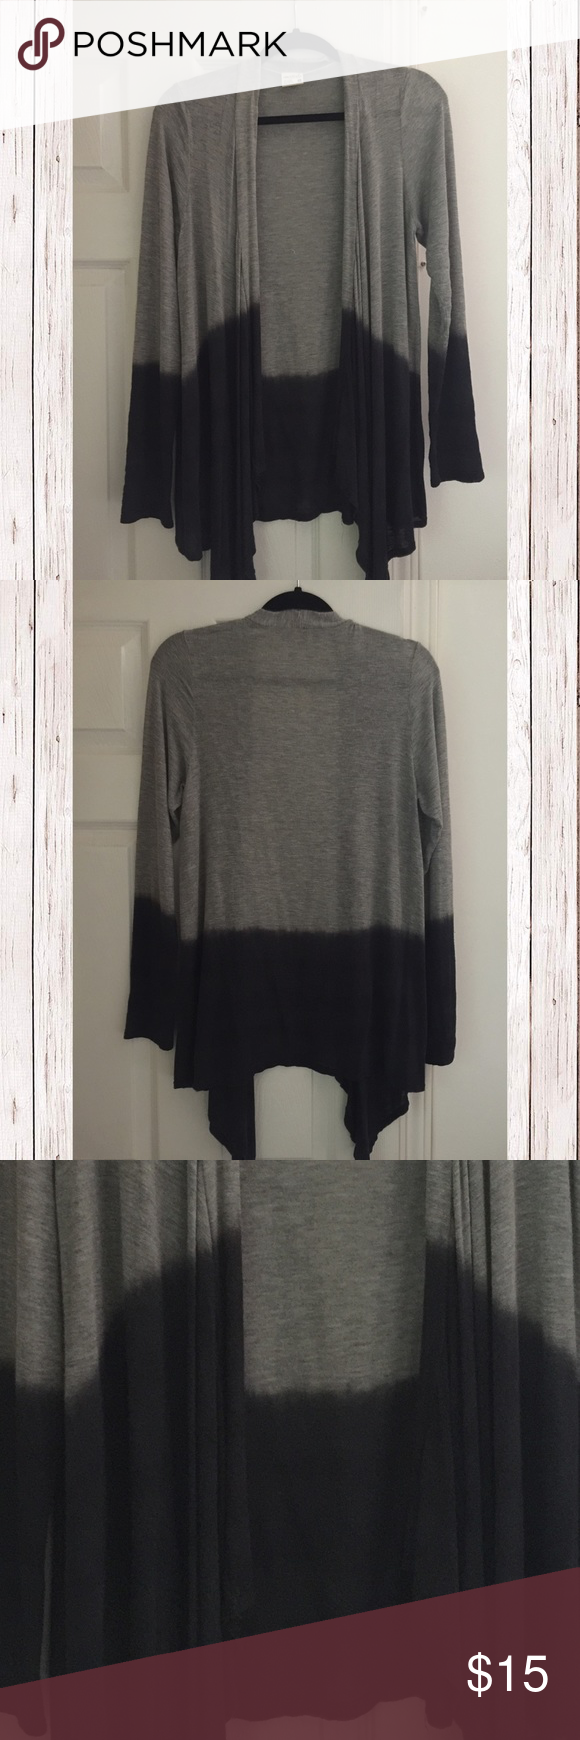 Ombré Cardigan So cute! Worn only once. Thin light and cozy ...